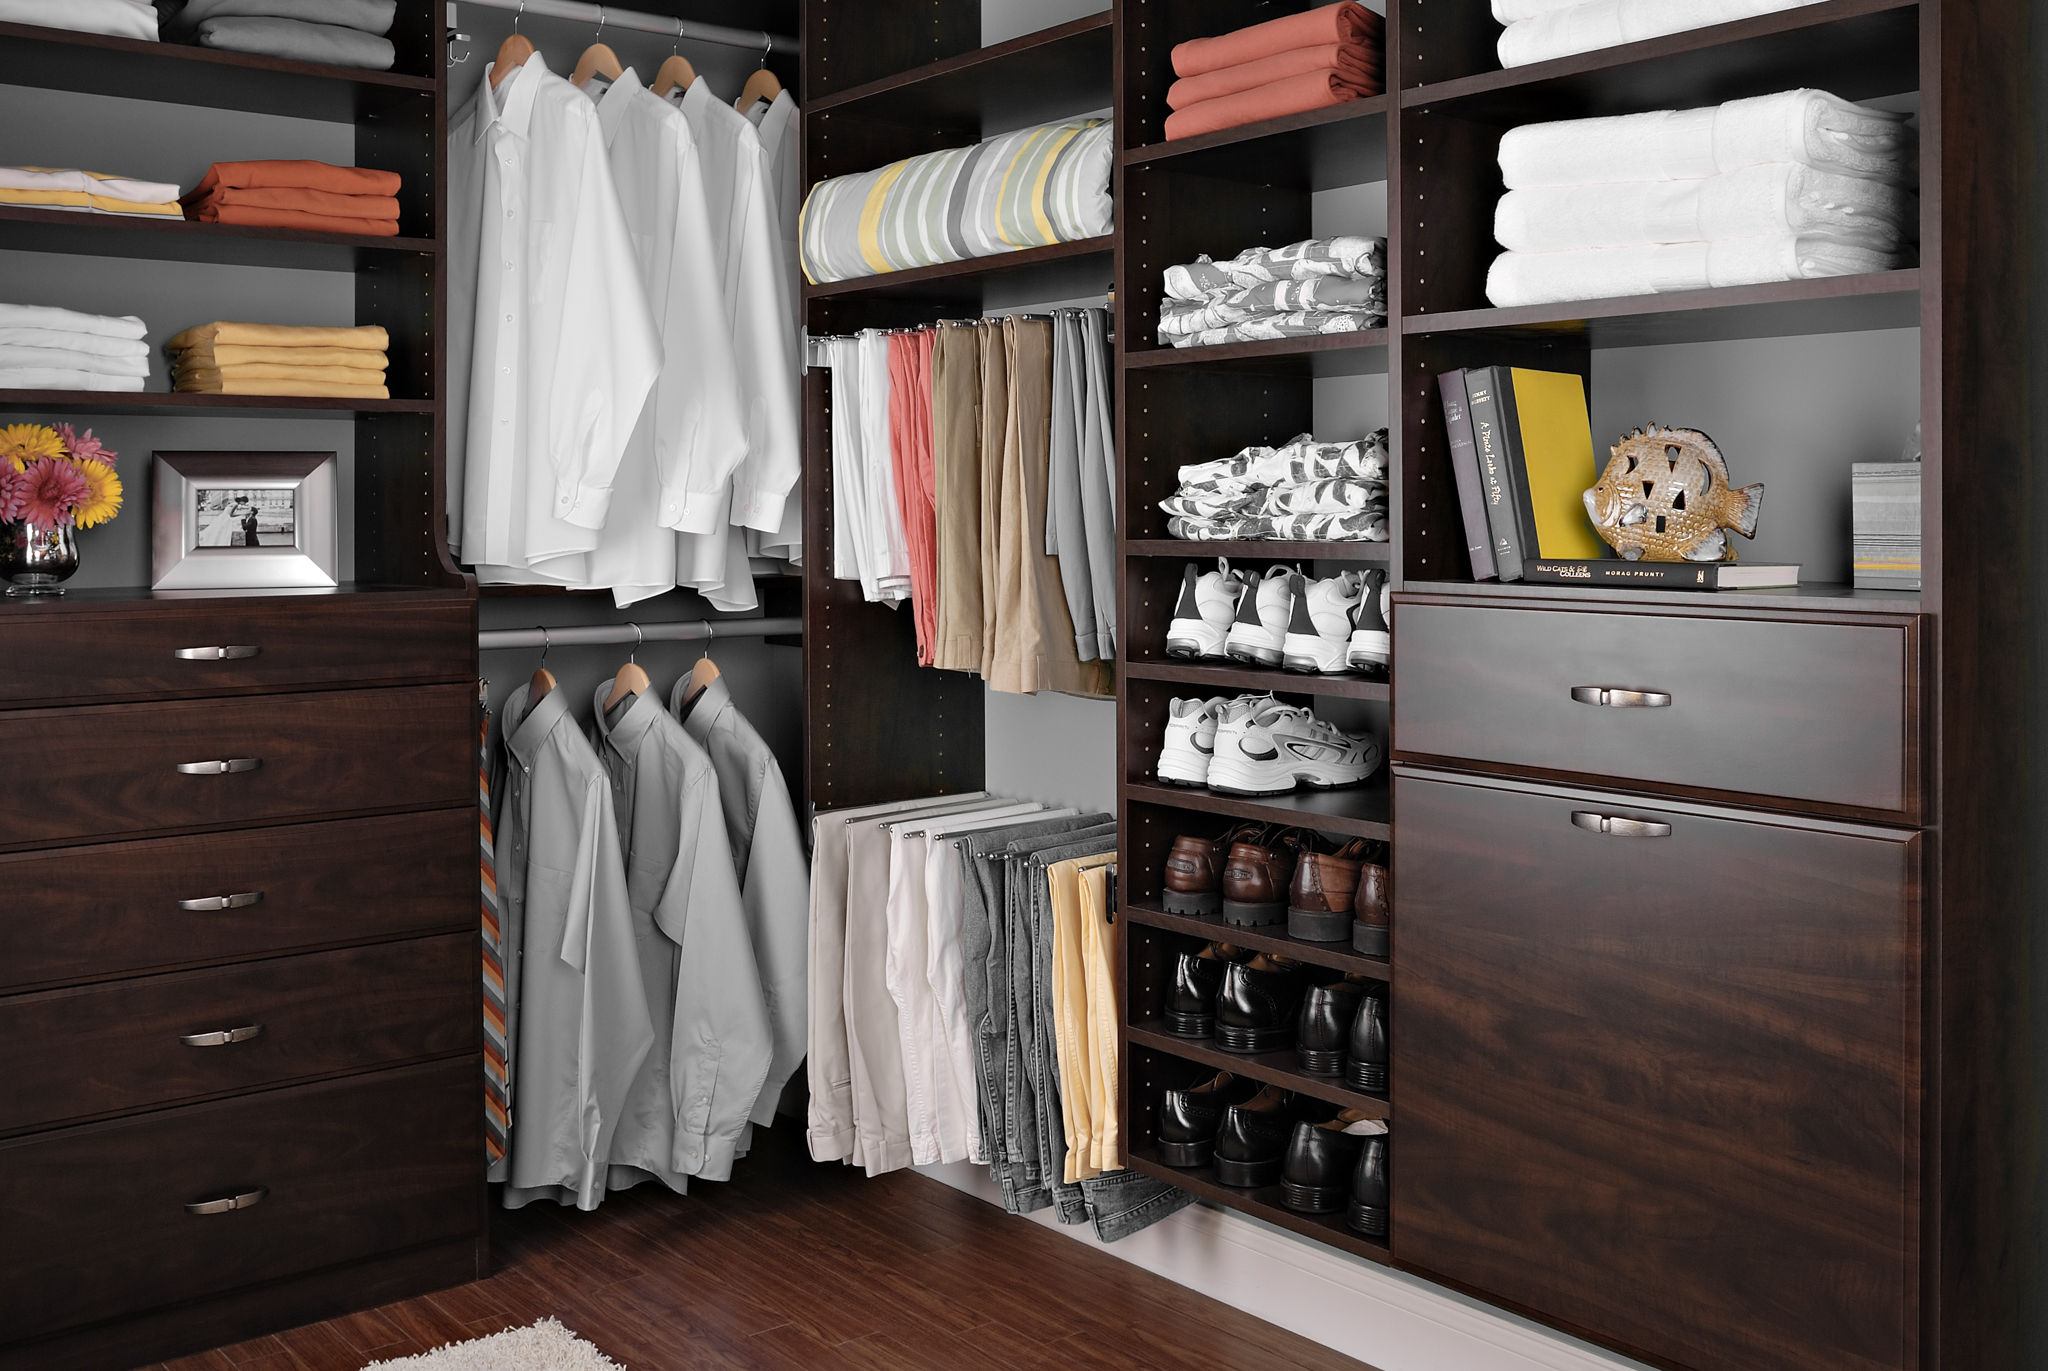 most a closets build cost with walk in to beautiful designs pricing luxury closet prices functional and wholesale california can quite be